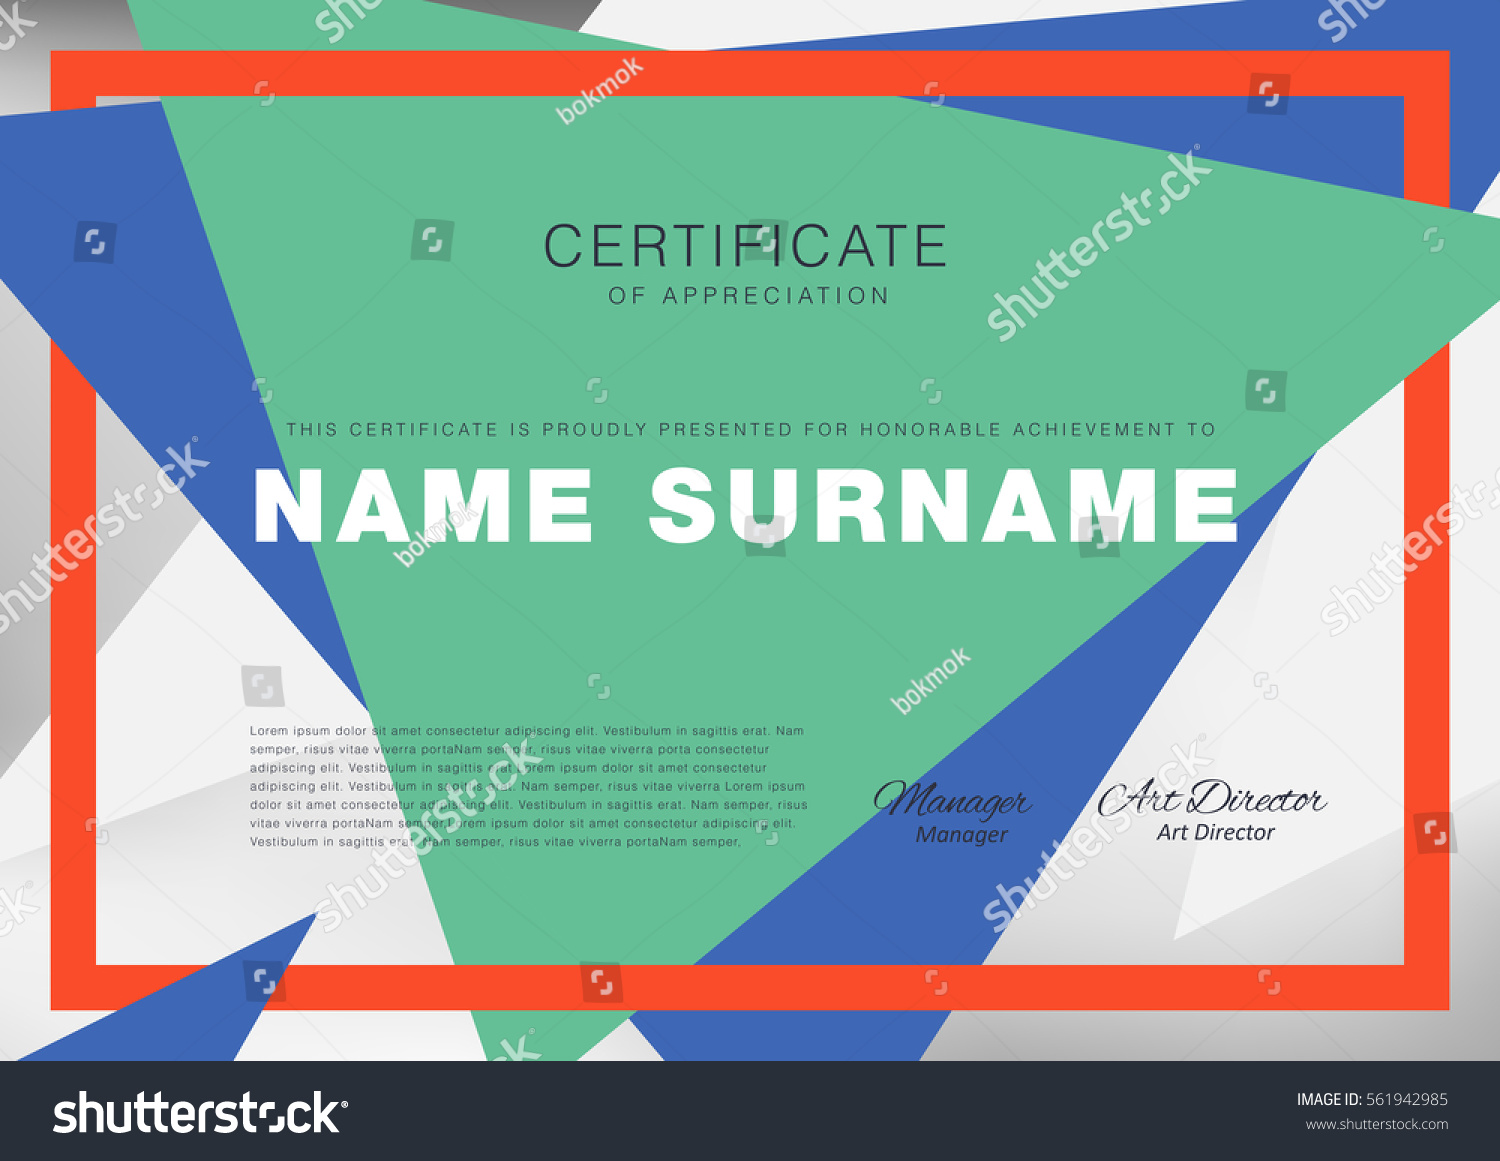 Certificate layout template clean modern patterndiplomavector certificate layout template with clean and modern patterndiplomavector illustration yadclub Gallery